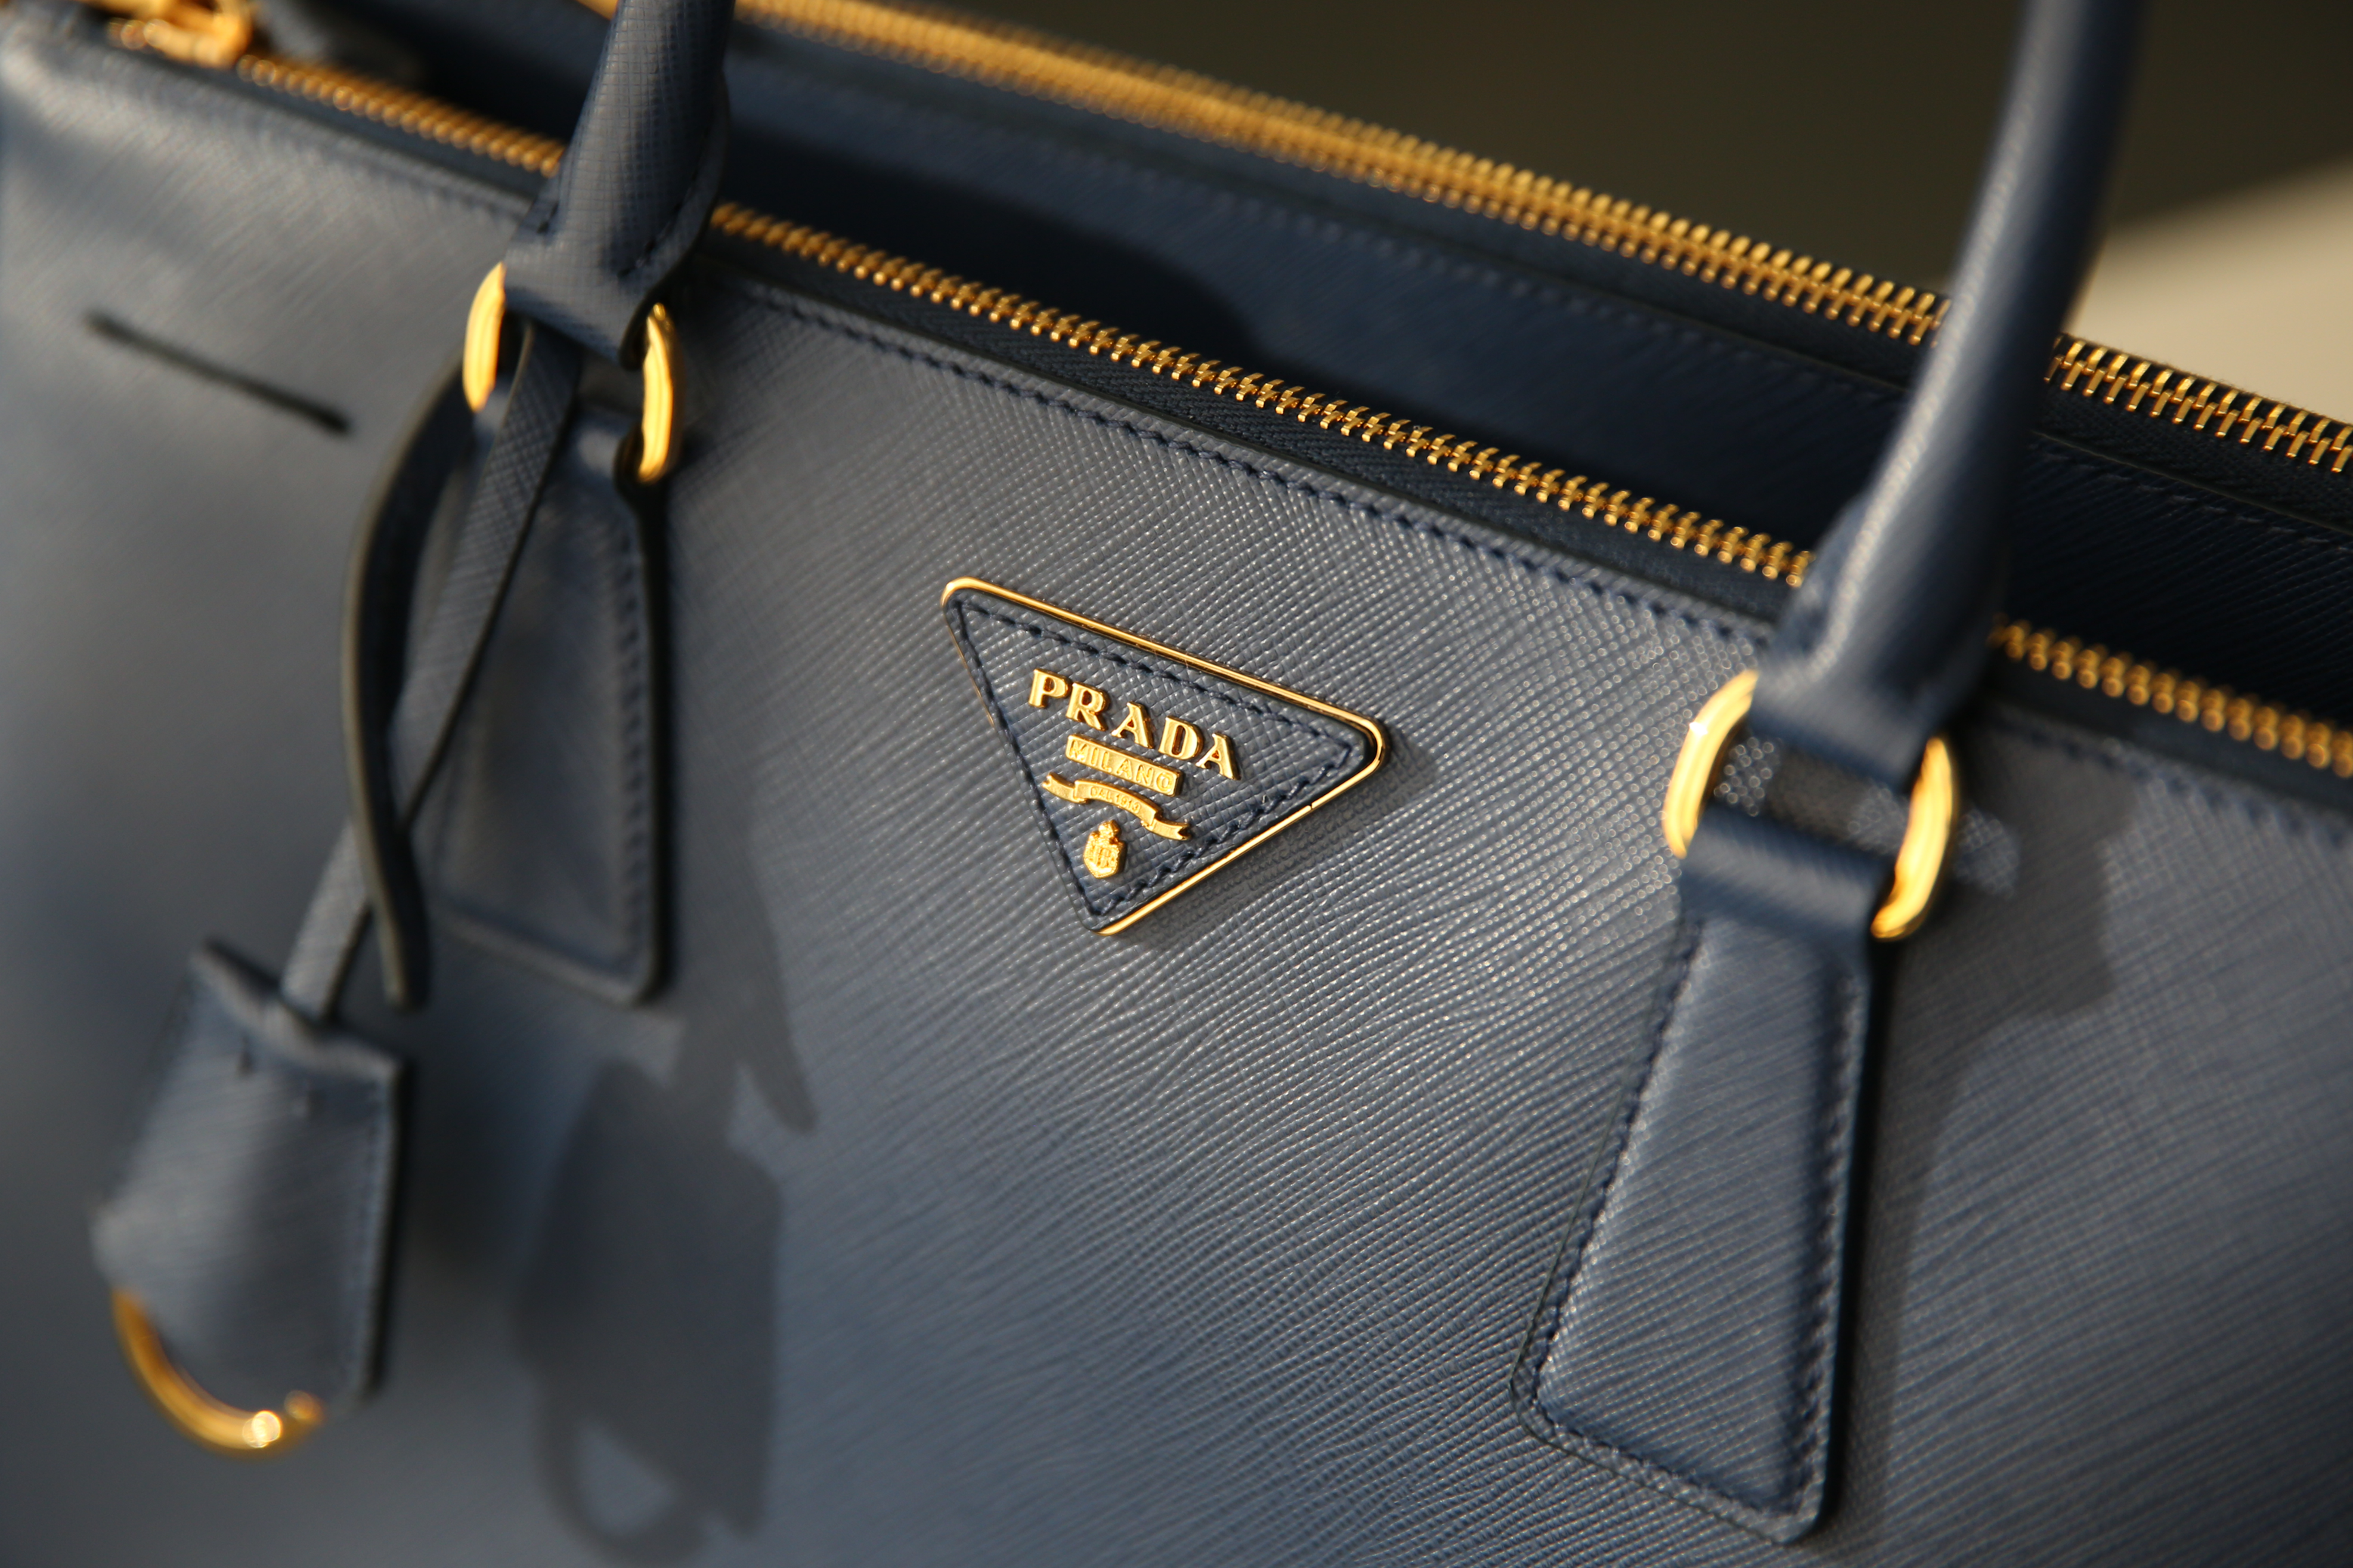 How to Authenticate Prada Saffiano Handbags